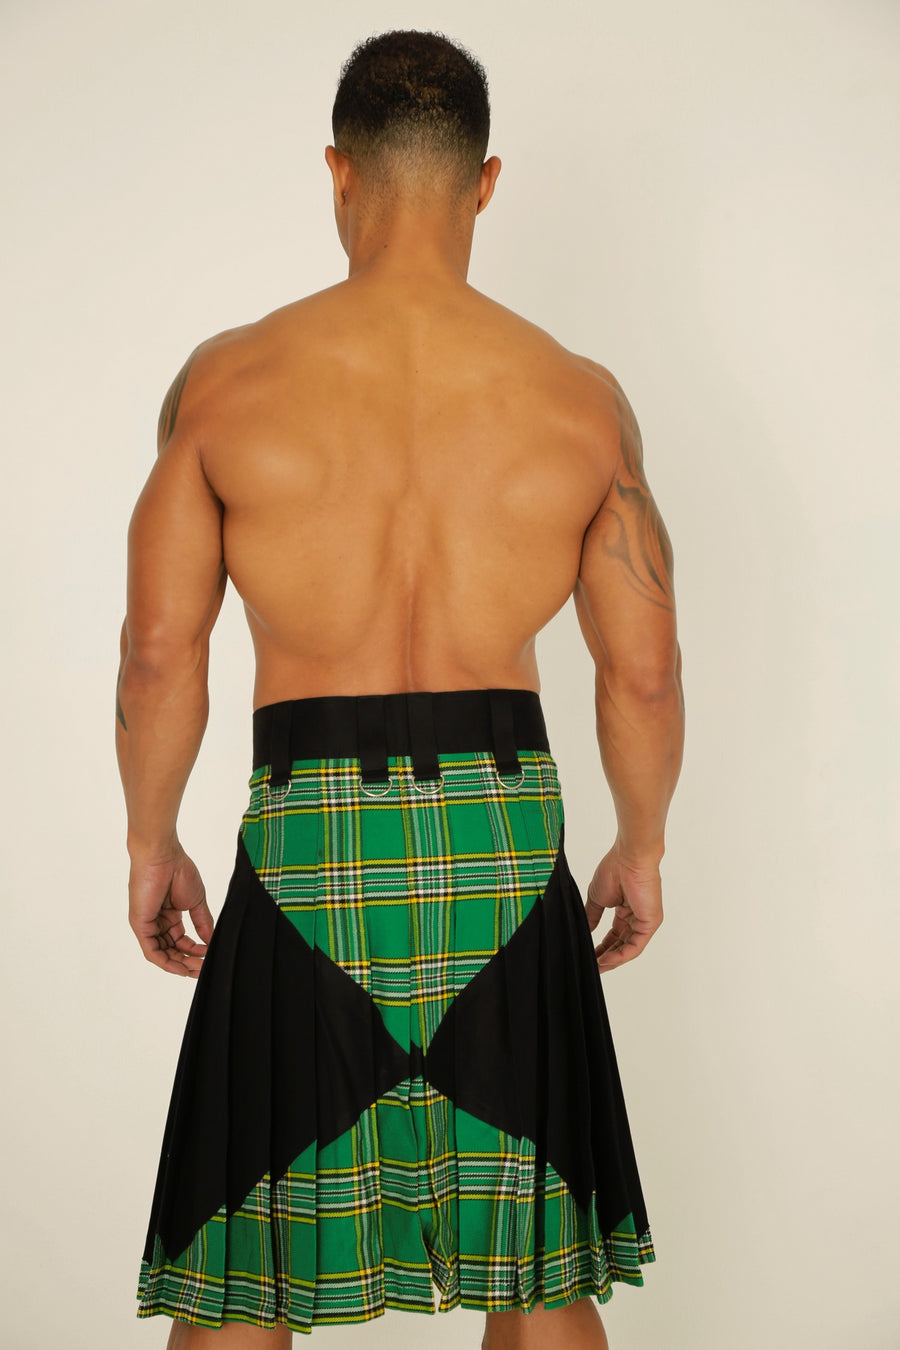 x men tartan hybrid kilt back view